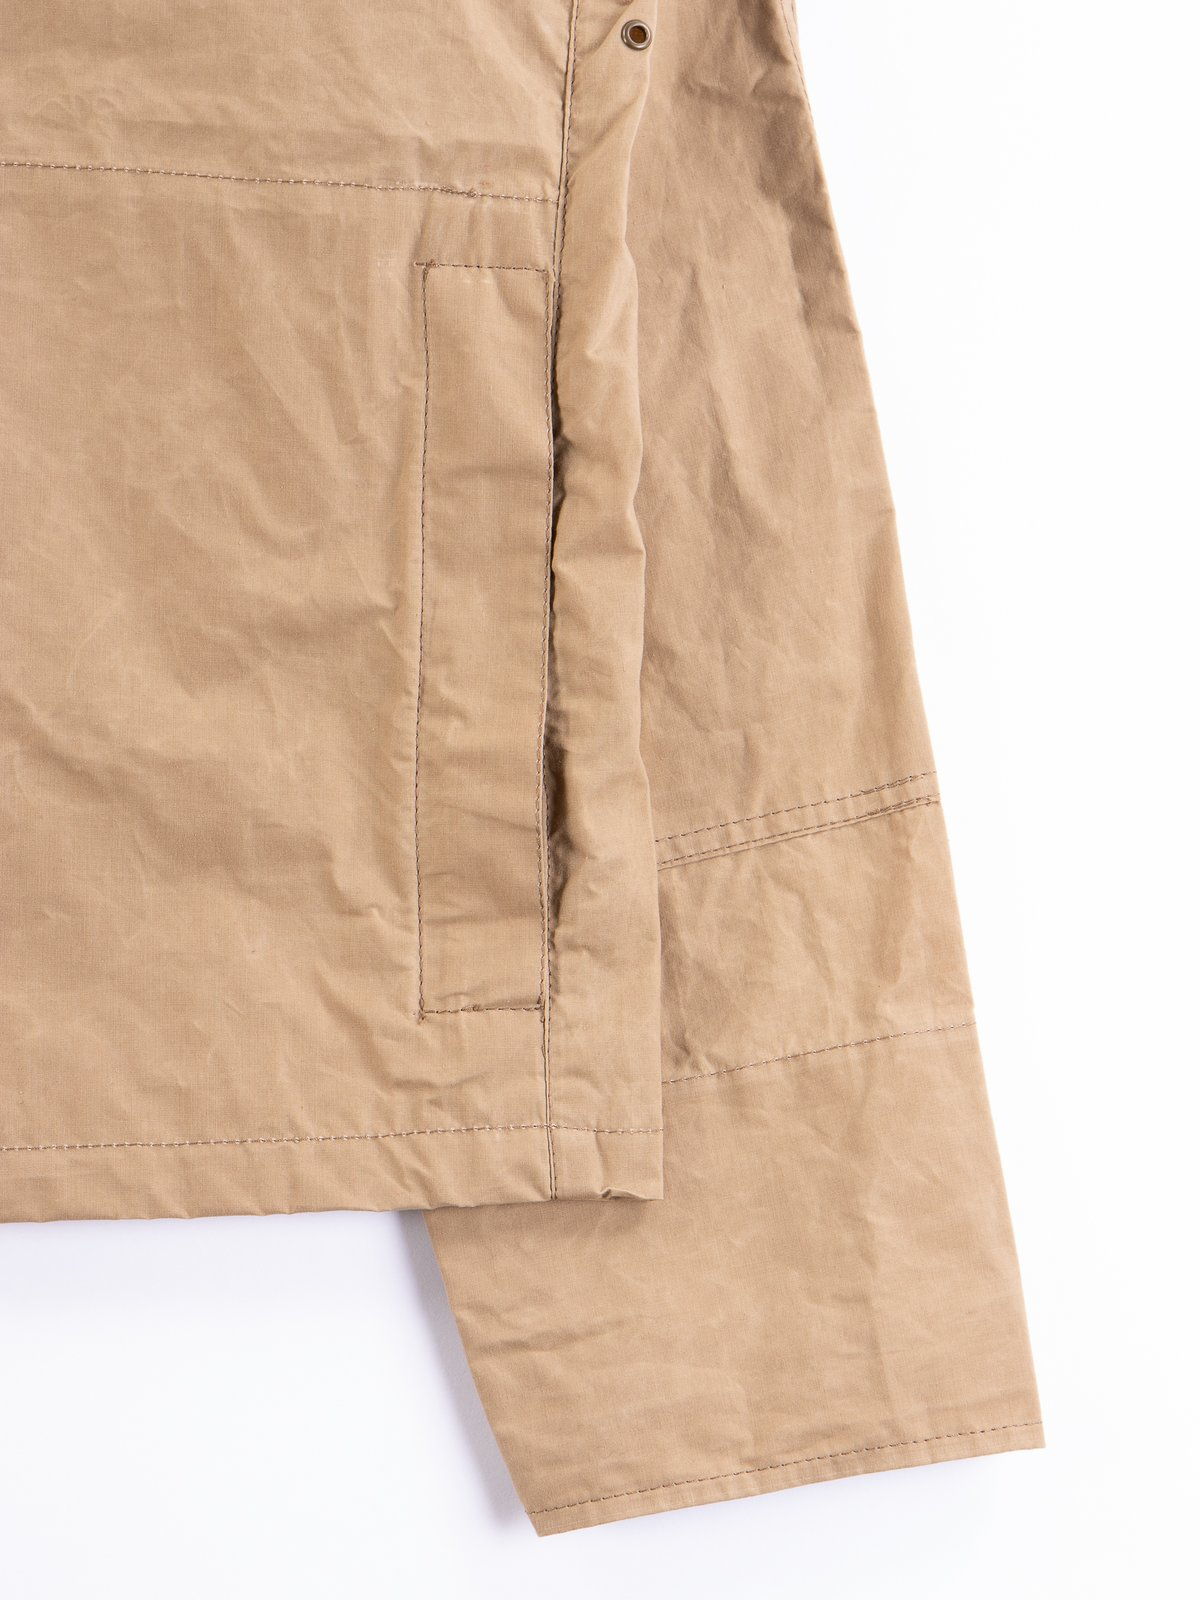 Sand Unlined Graham Jacket - Image 7